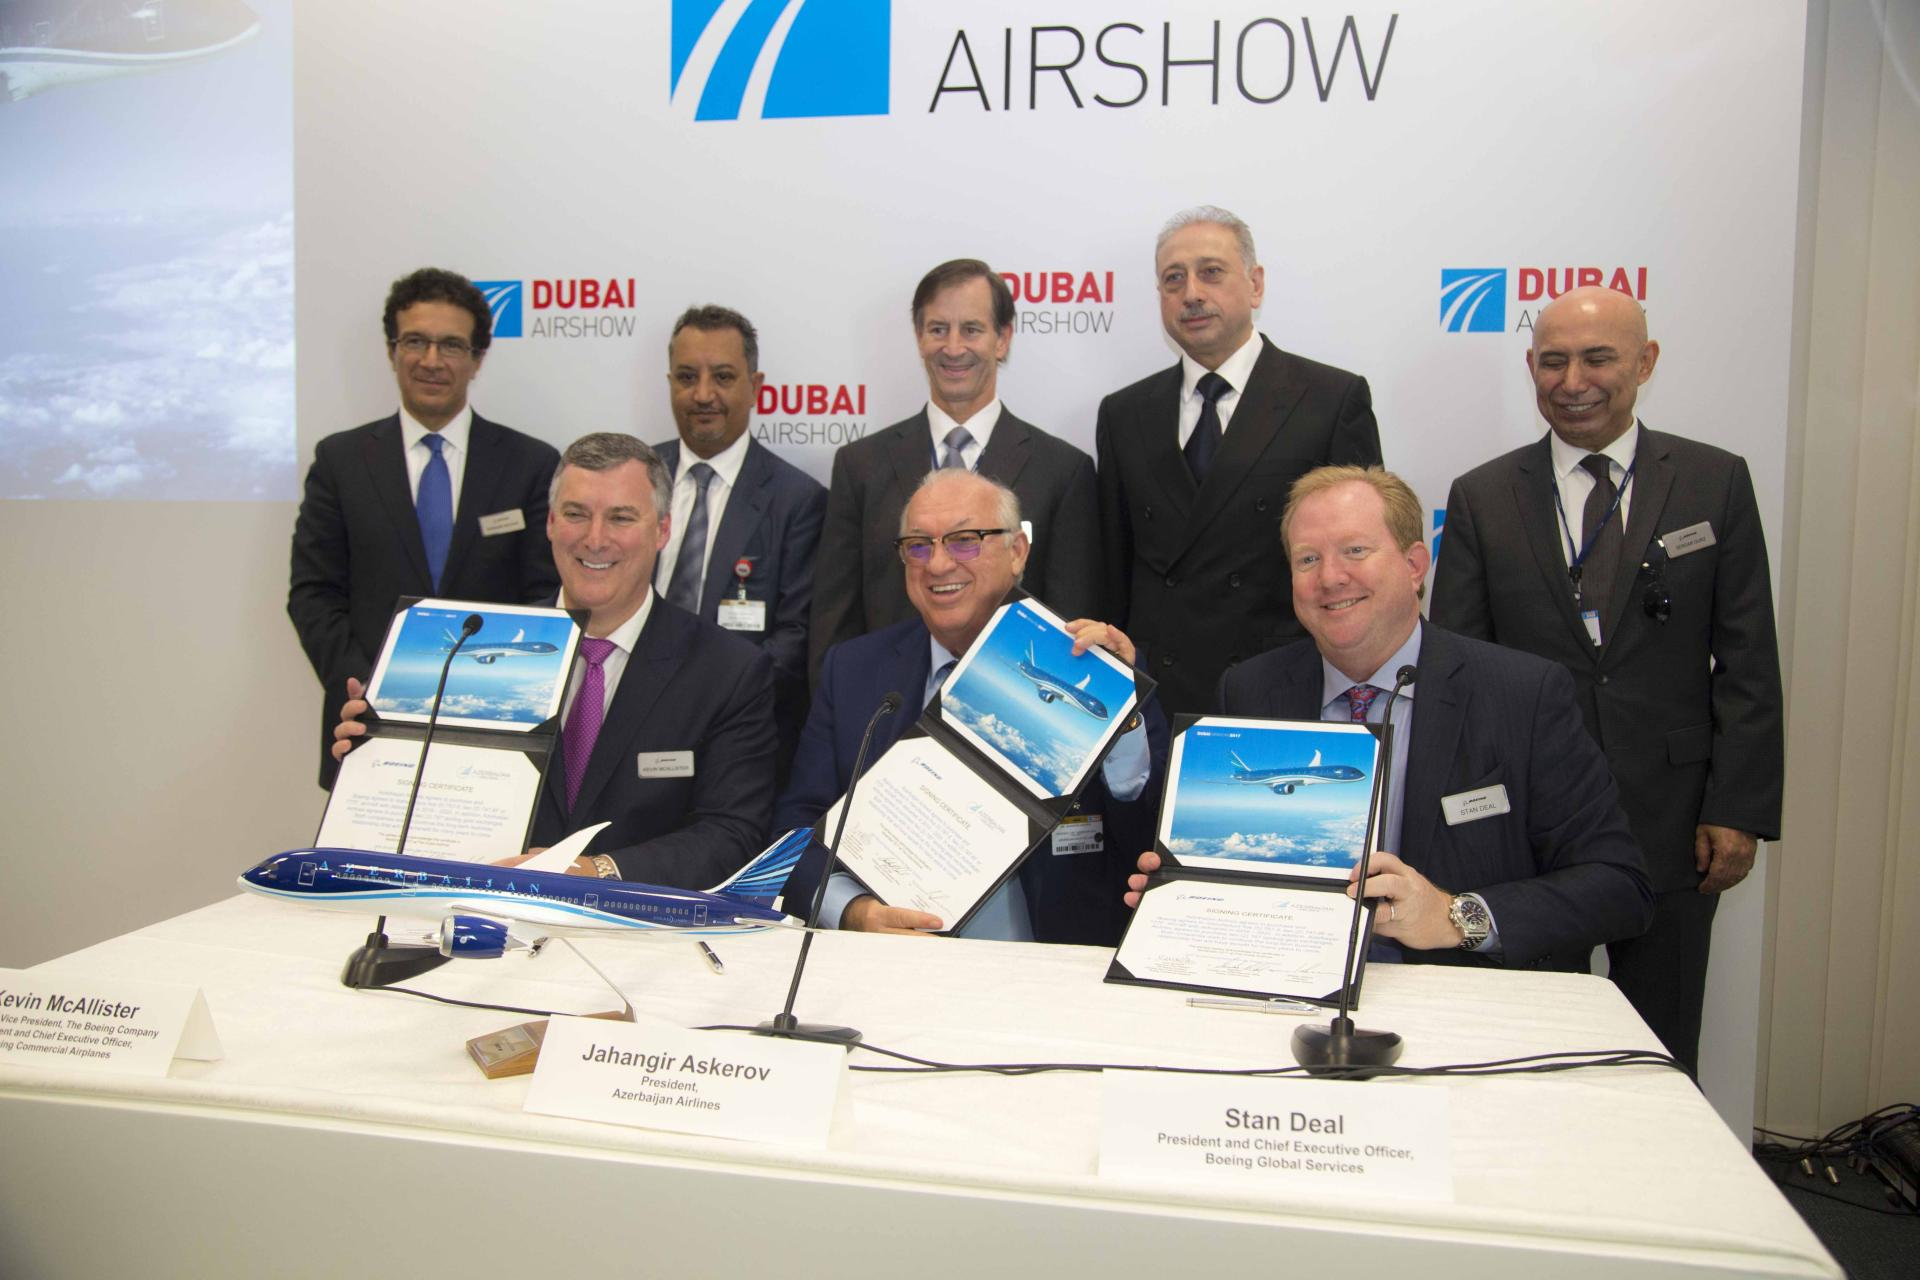 Azerbaijan reaches key agreements in civil aviation at Dubai Airshow 2017 (PHOTO)